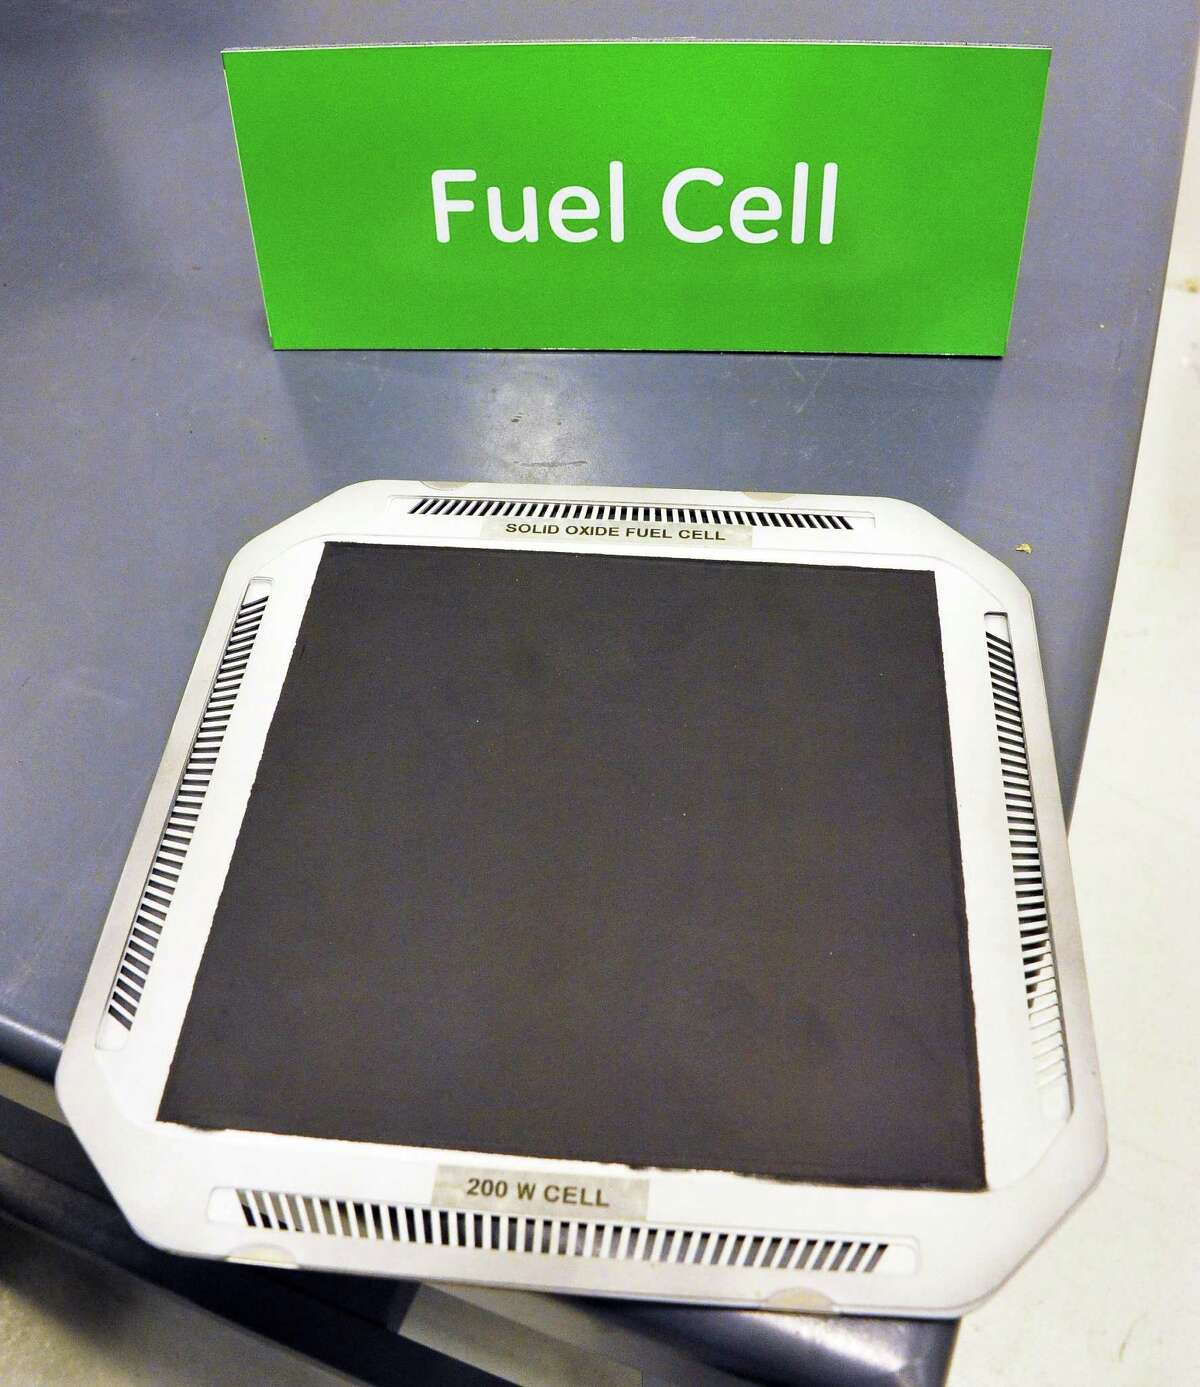 A furl cell at GE's new fuel cell facility Tuesday August 26, 2014, in Malta, NY. (John Carl D'Annibale / Times Union)